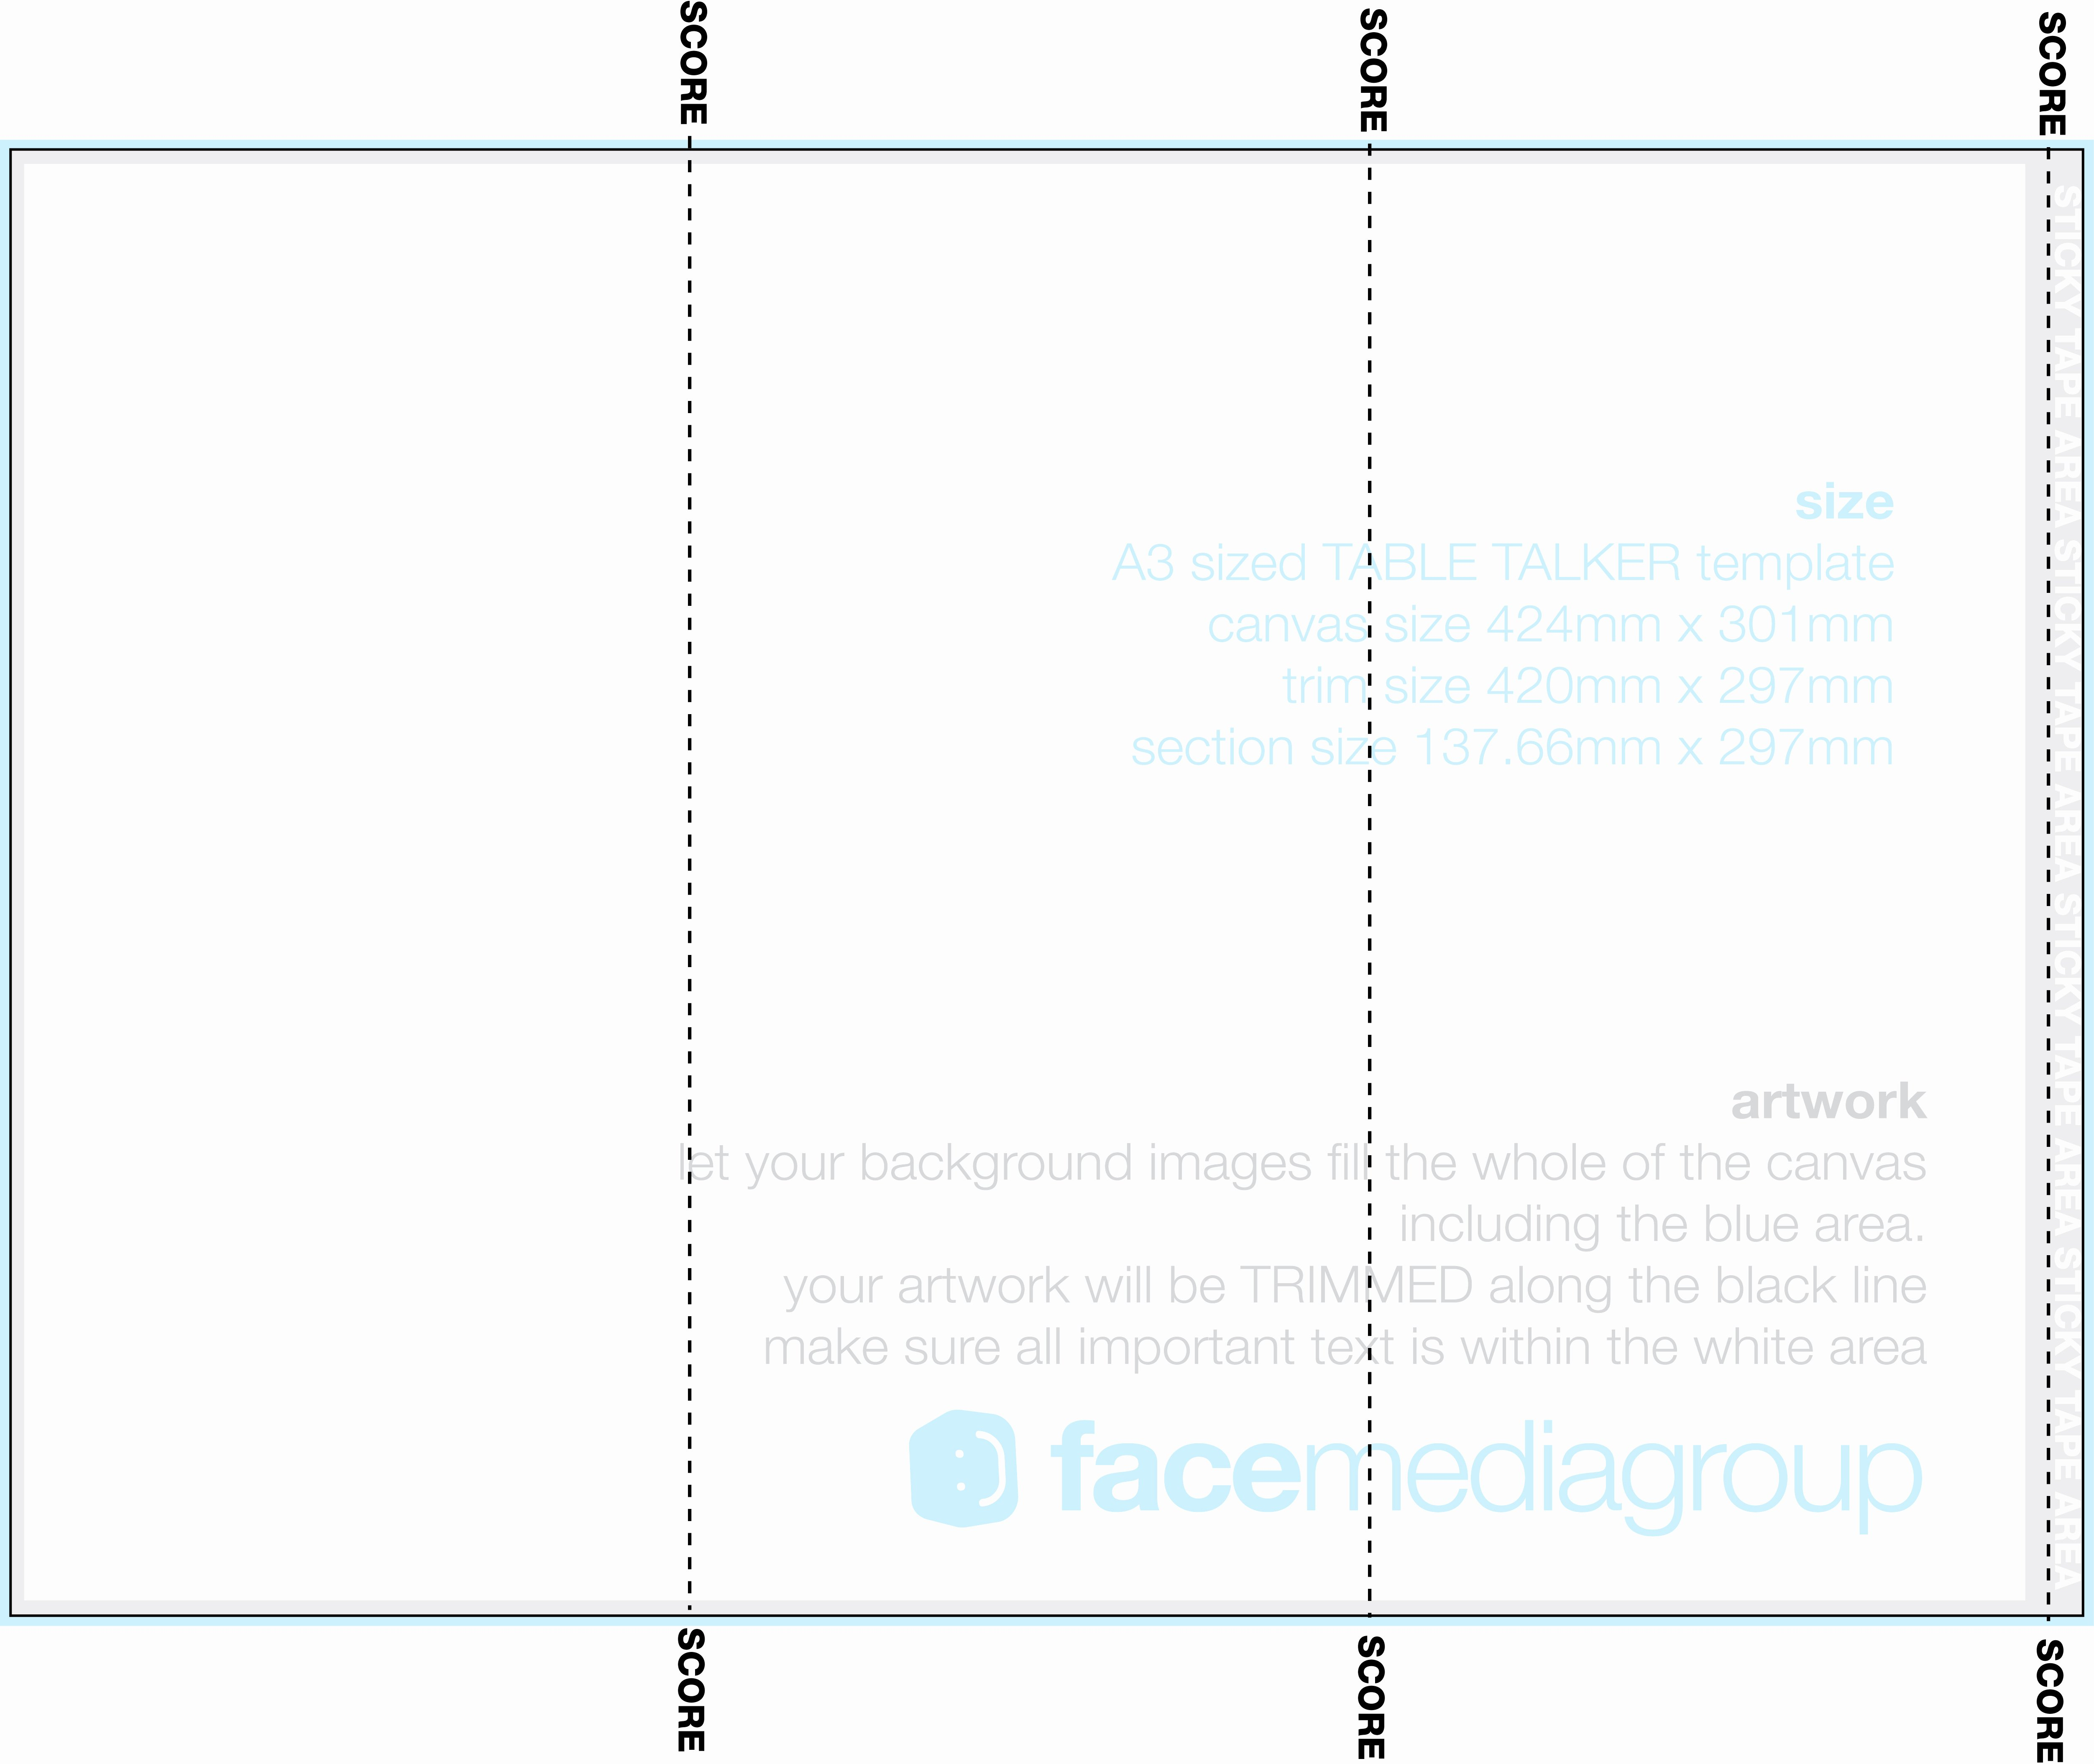 Tri Fold Table Tent Template Beautiful A3 Tri Fold Table Talker Template